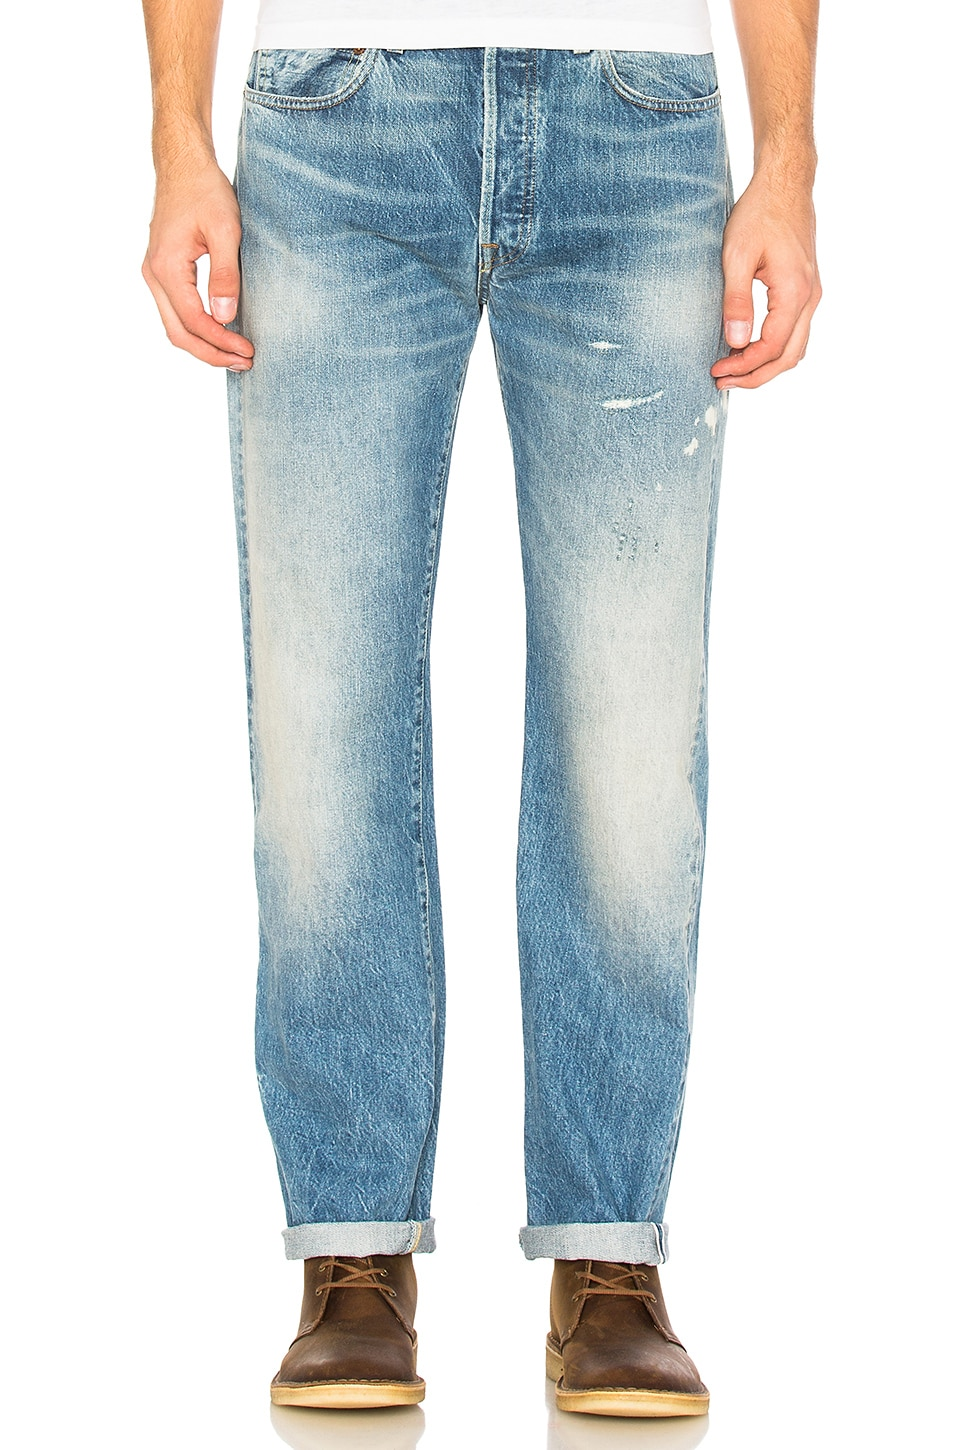 Photo of 1966 501 Jeans by LEVI'S Vintage Clothing men clothes